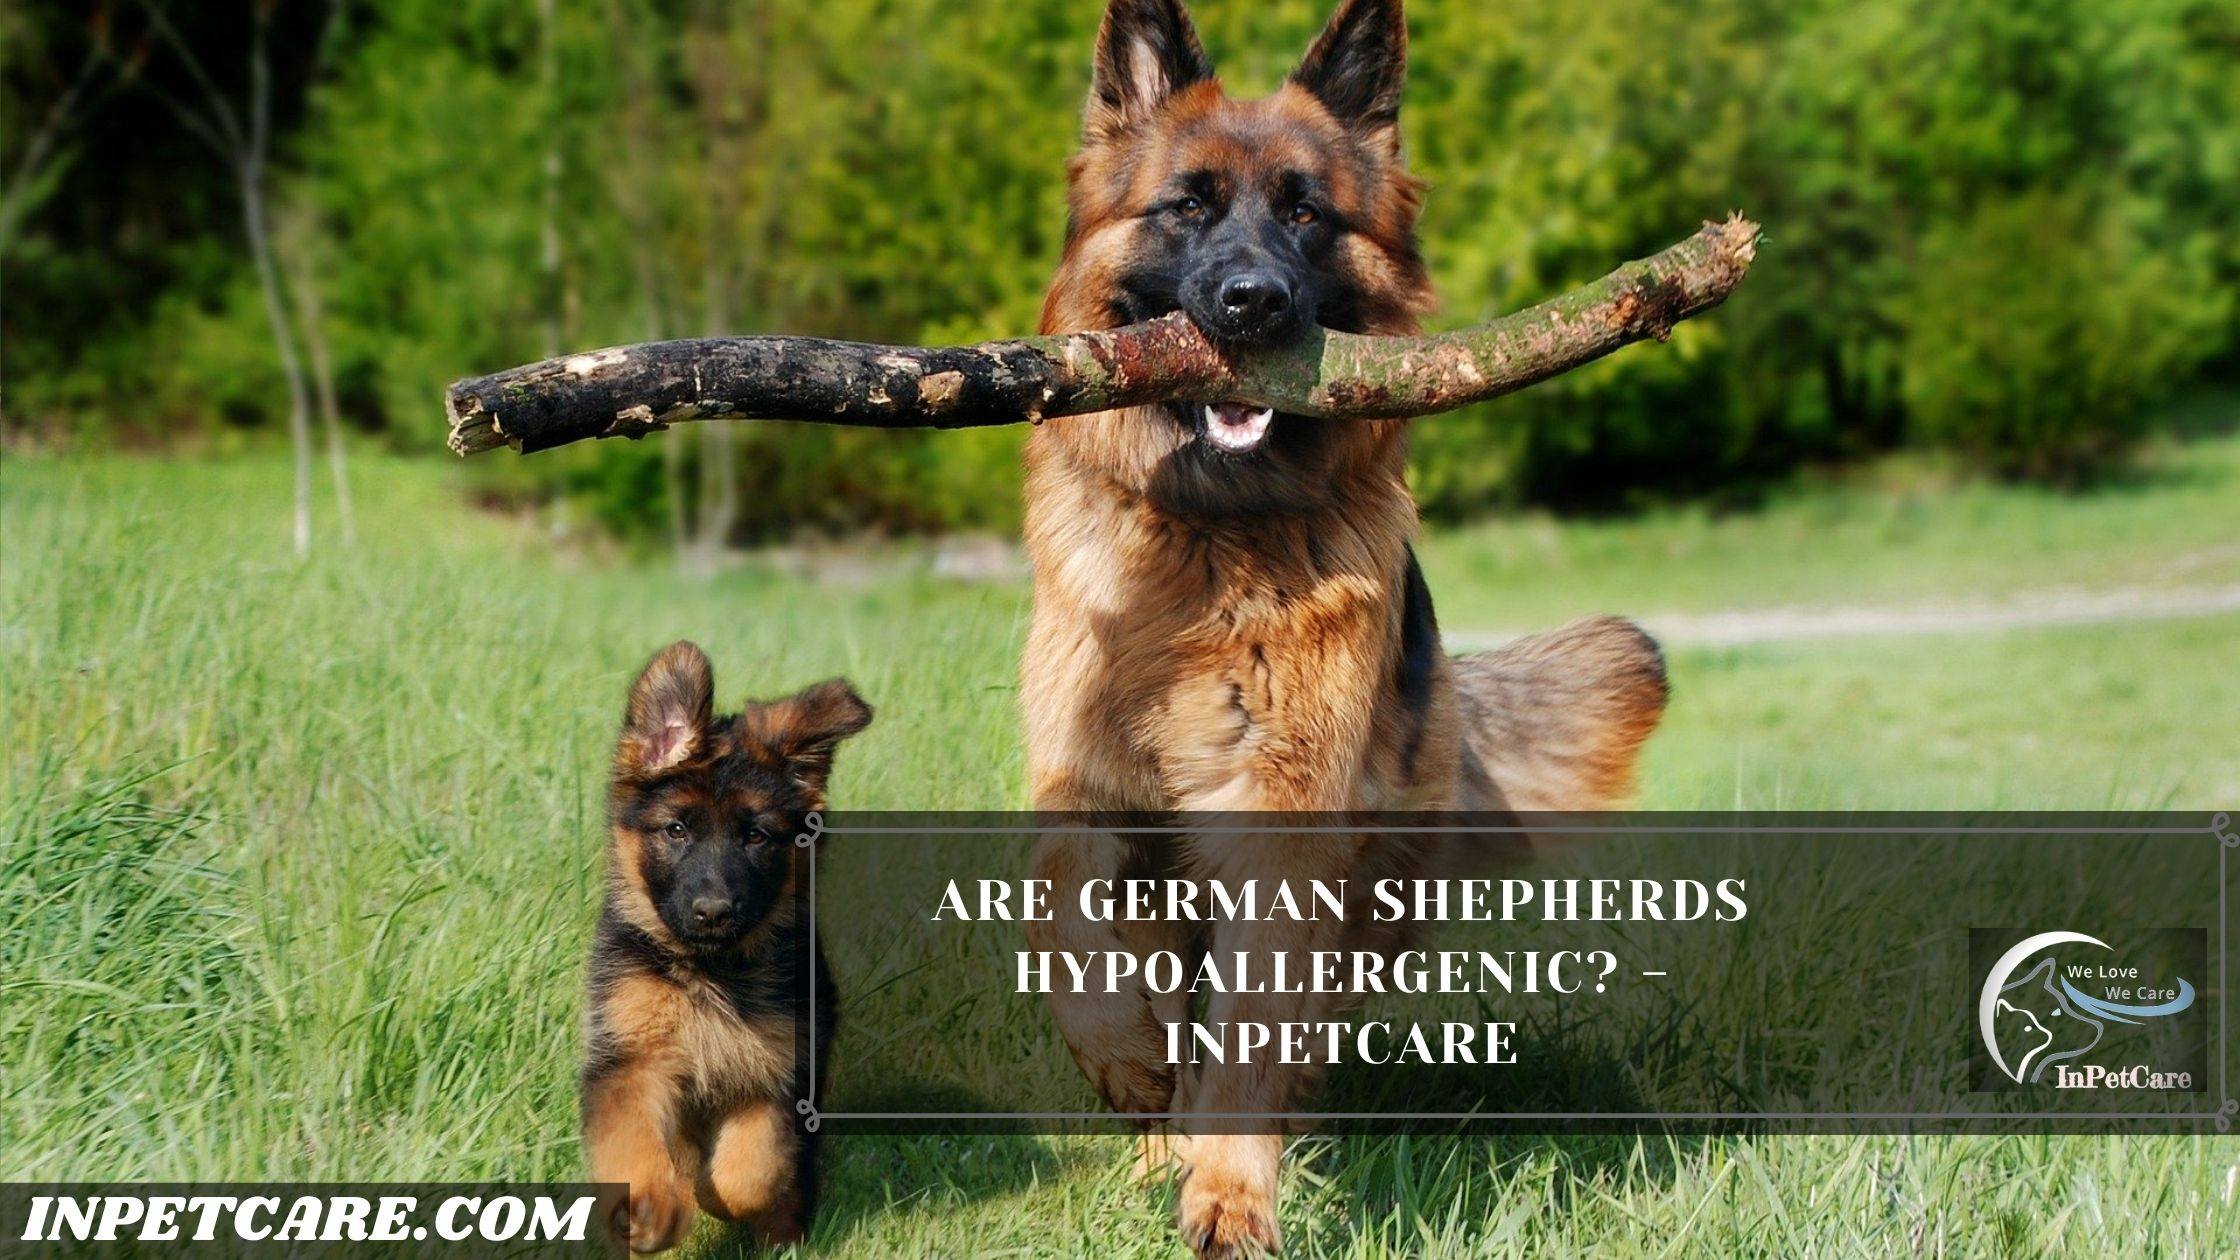 Are German Shepherds Hypoallergenic?